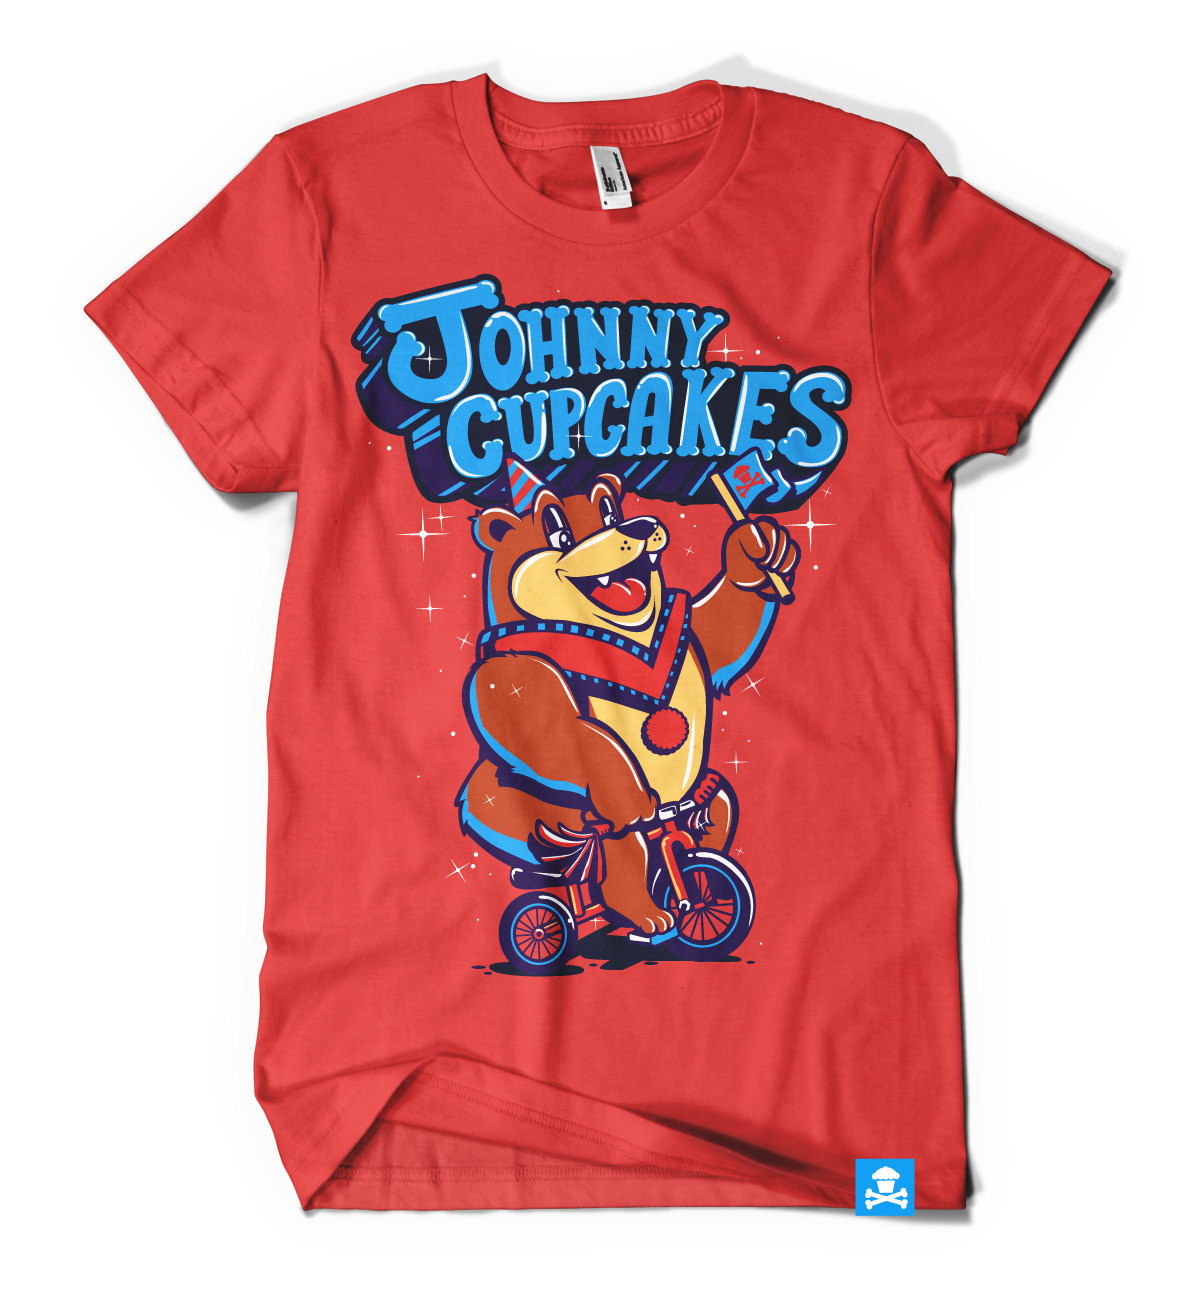 Sugar Coated x Johnny Cupcakes  - image 2 - student project